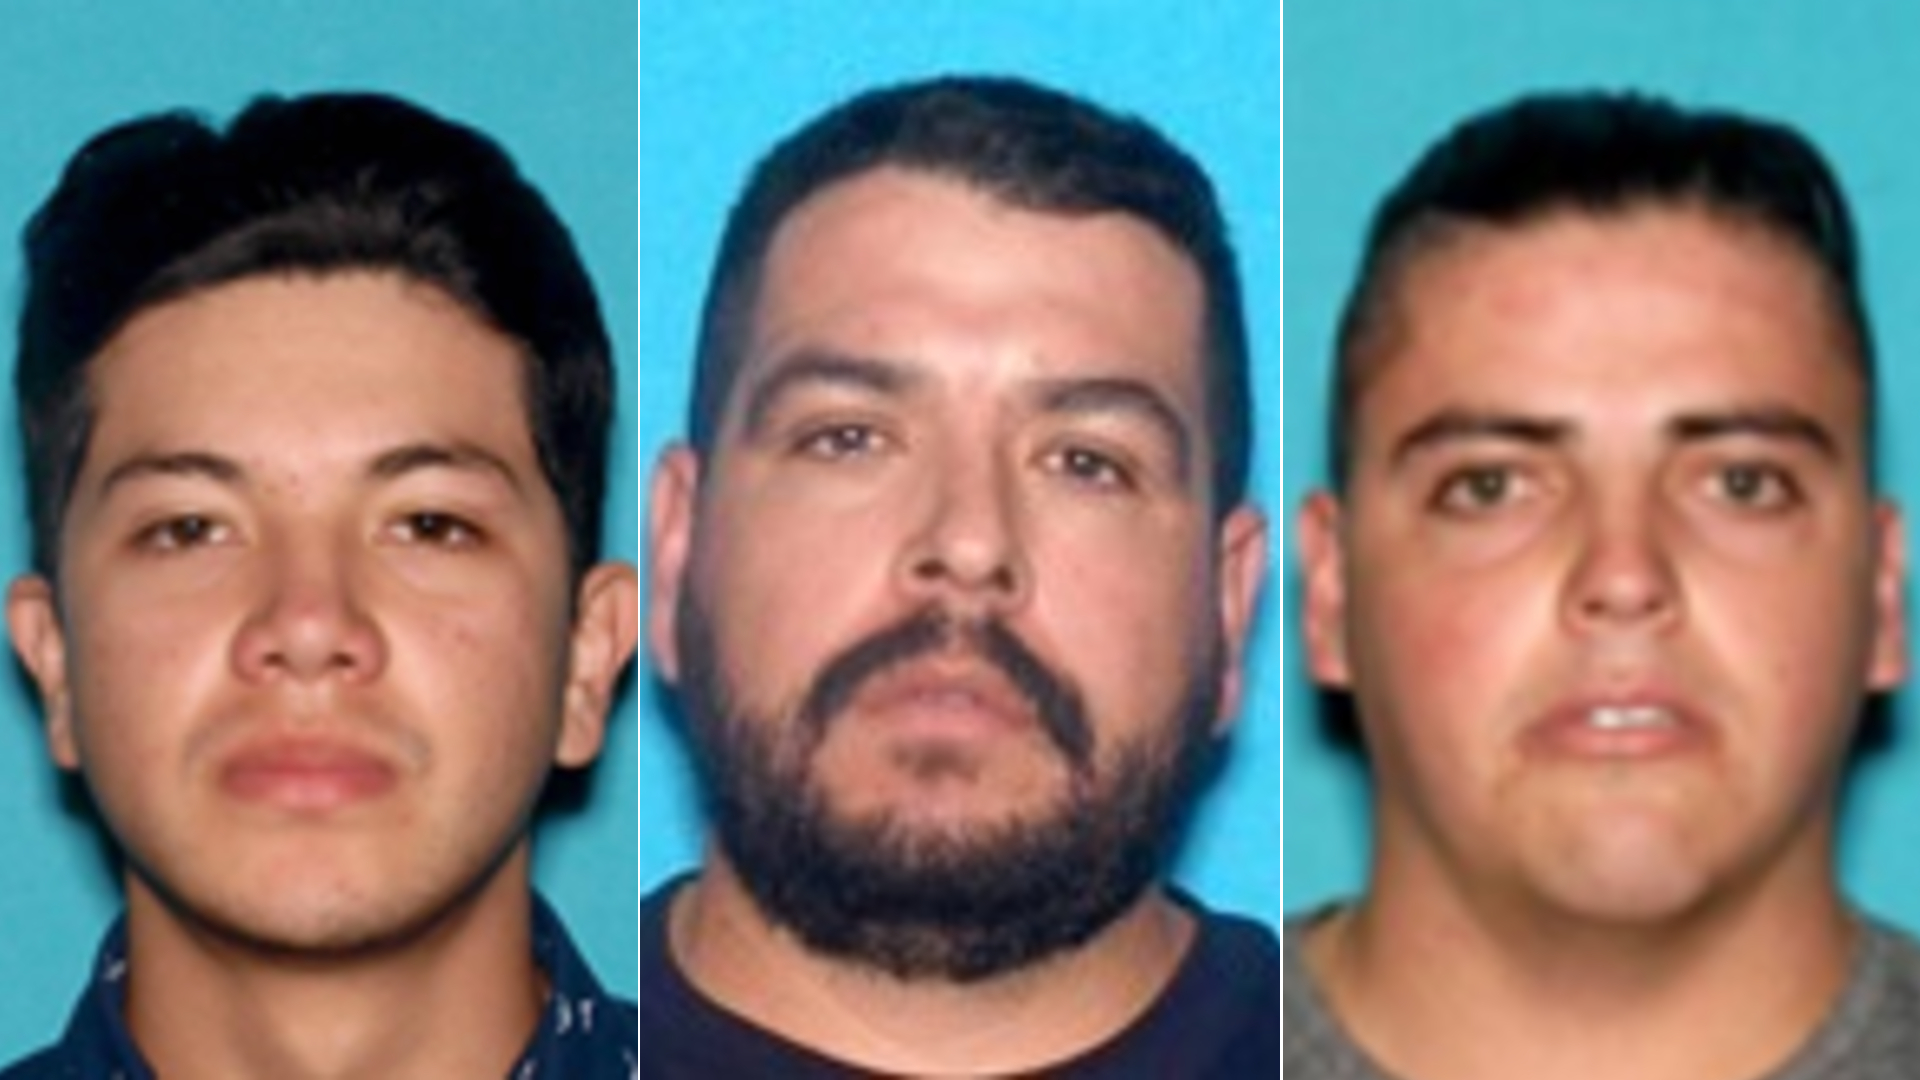 From left, Juan Jose Acosta-Soto, Edgar Nava-Ayala and Daniel Ocampo Nava are seen in undated photos released Dec. 17, 2020, by the Anaheim Police Department.